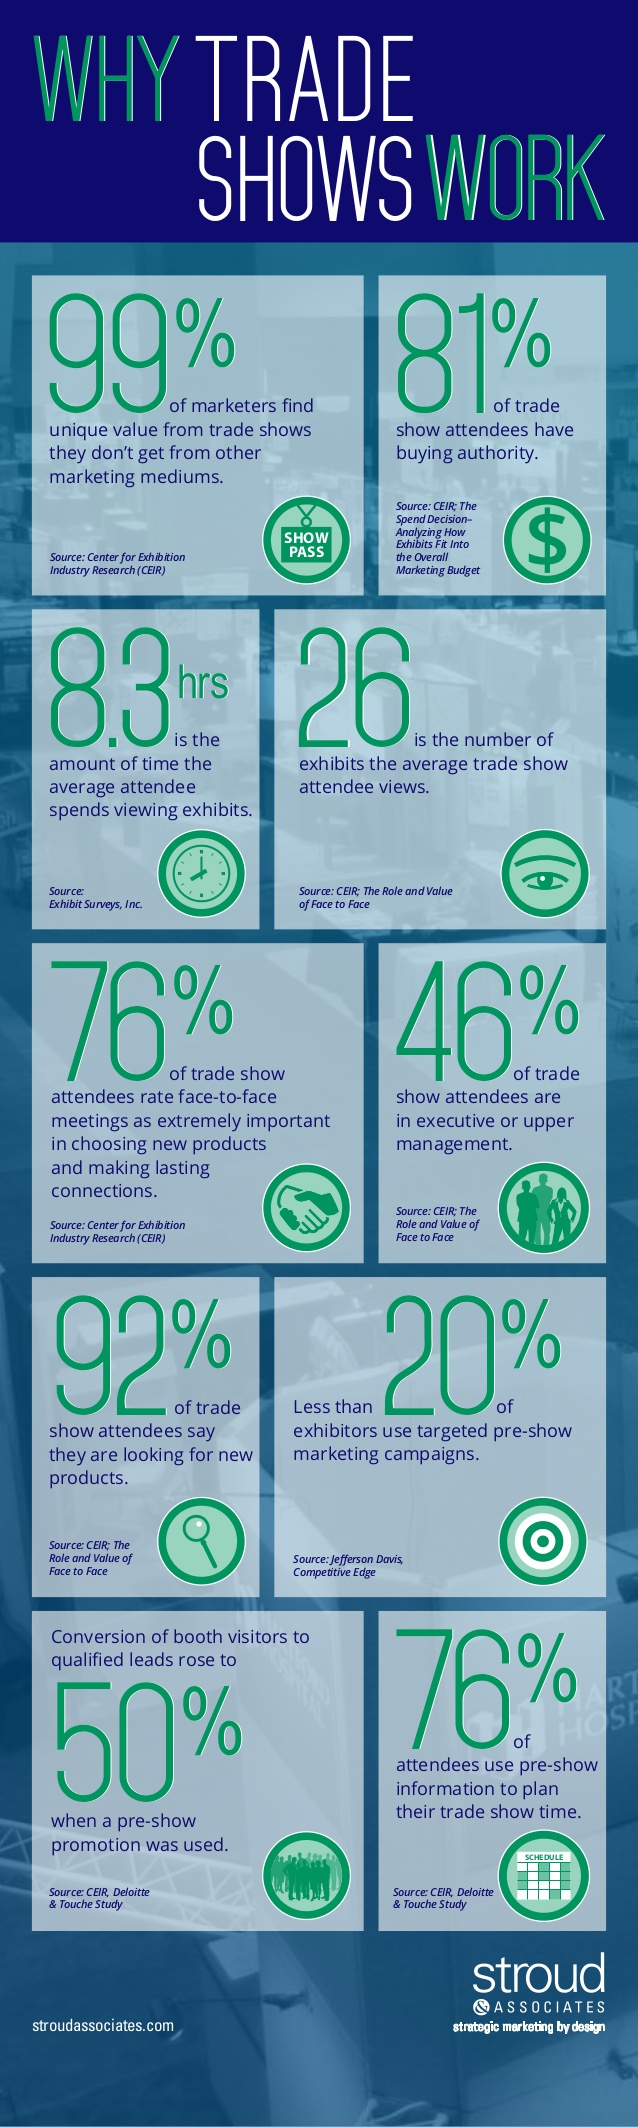 Why Trade Shows Work